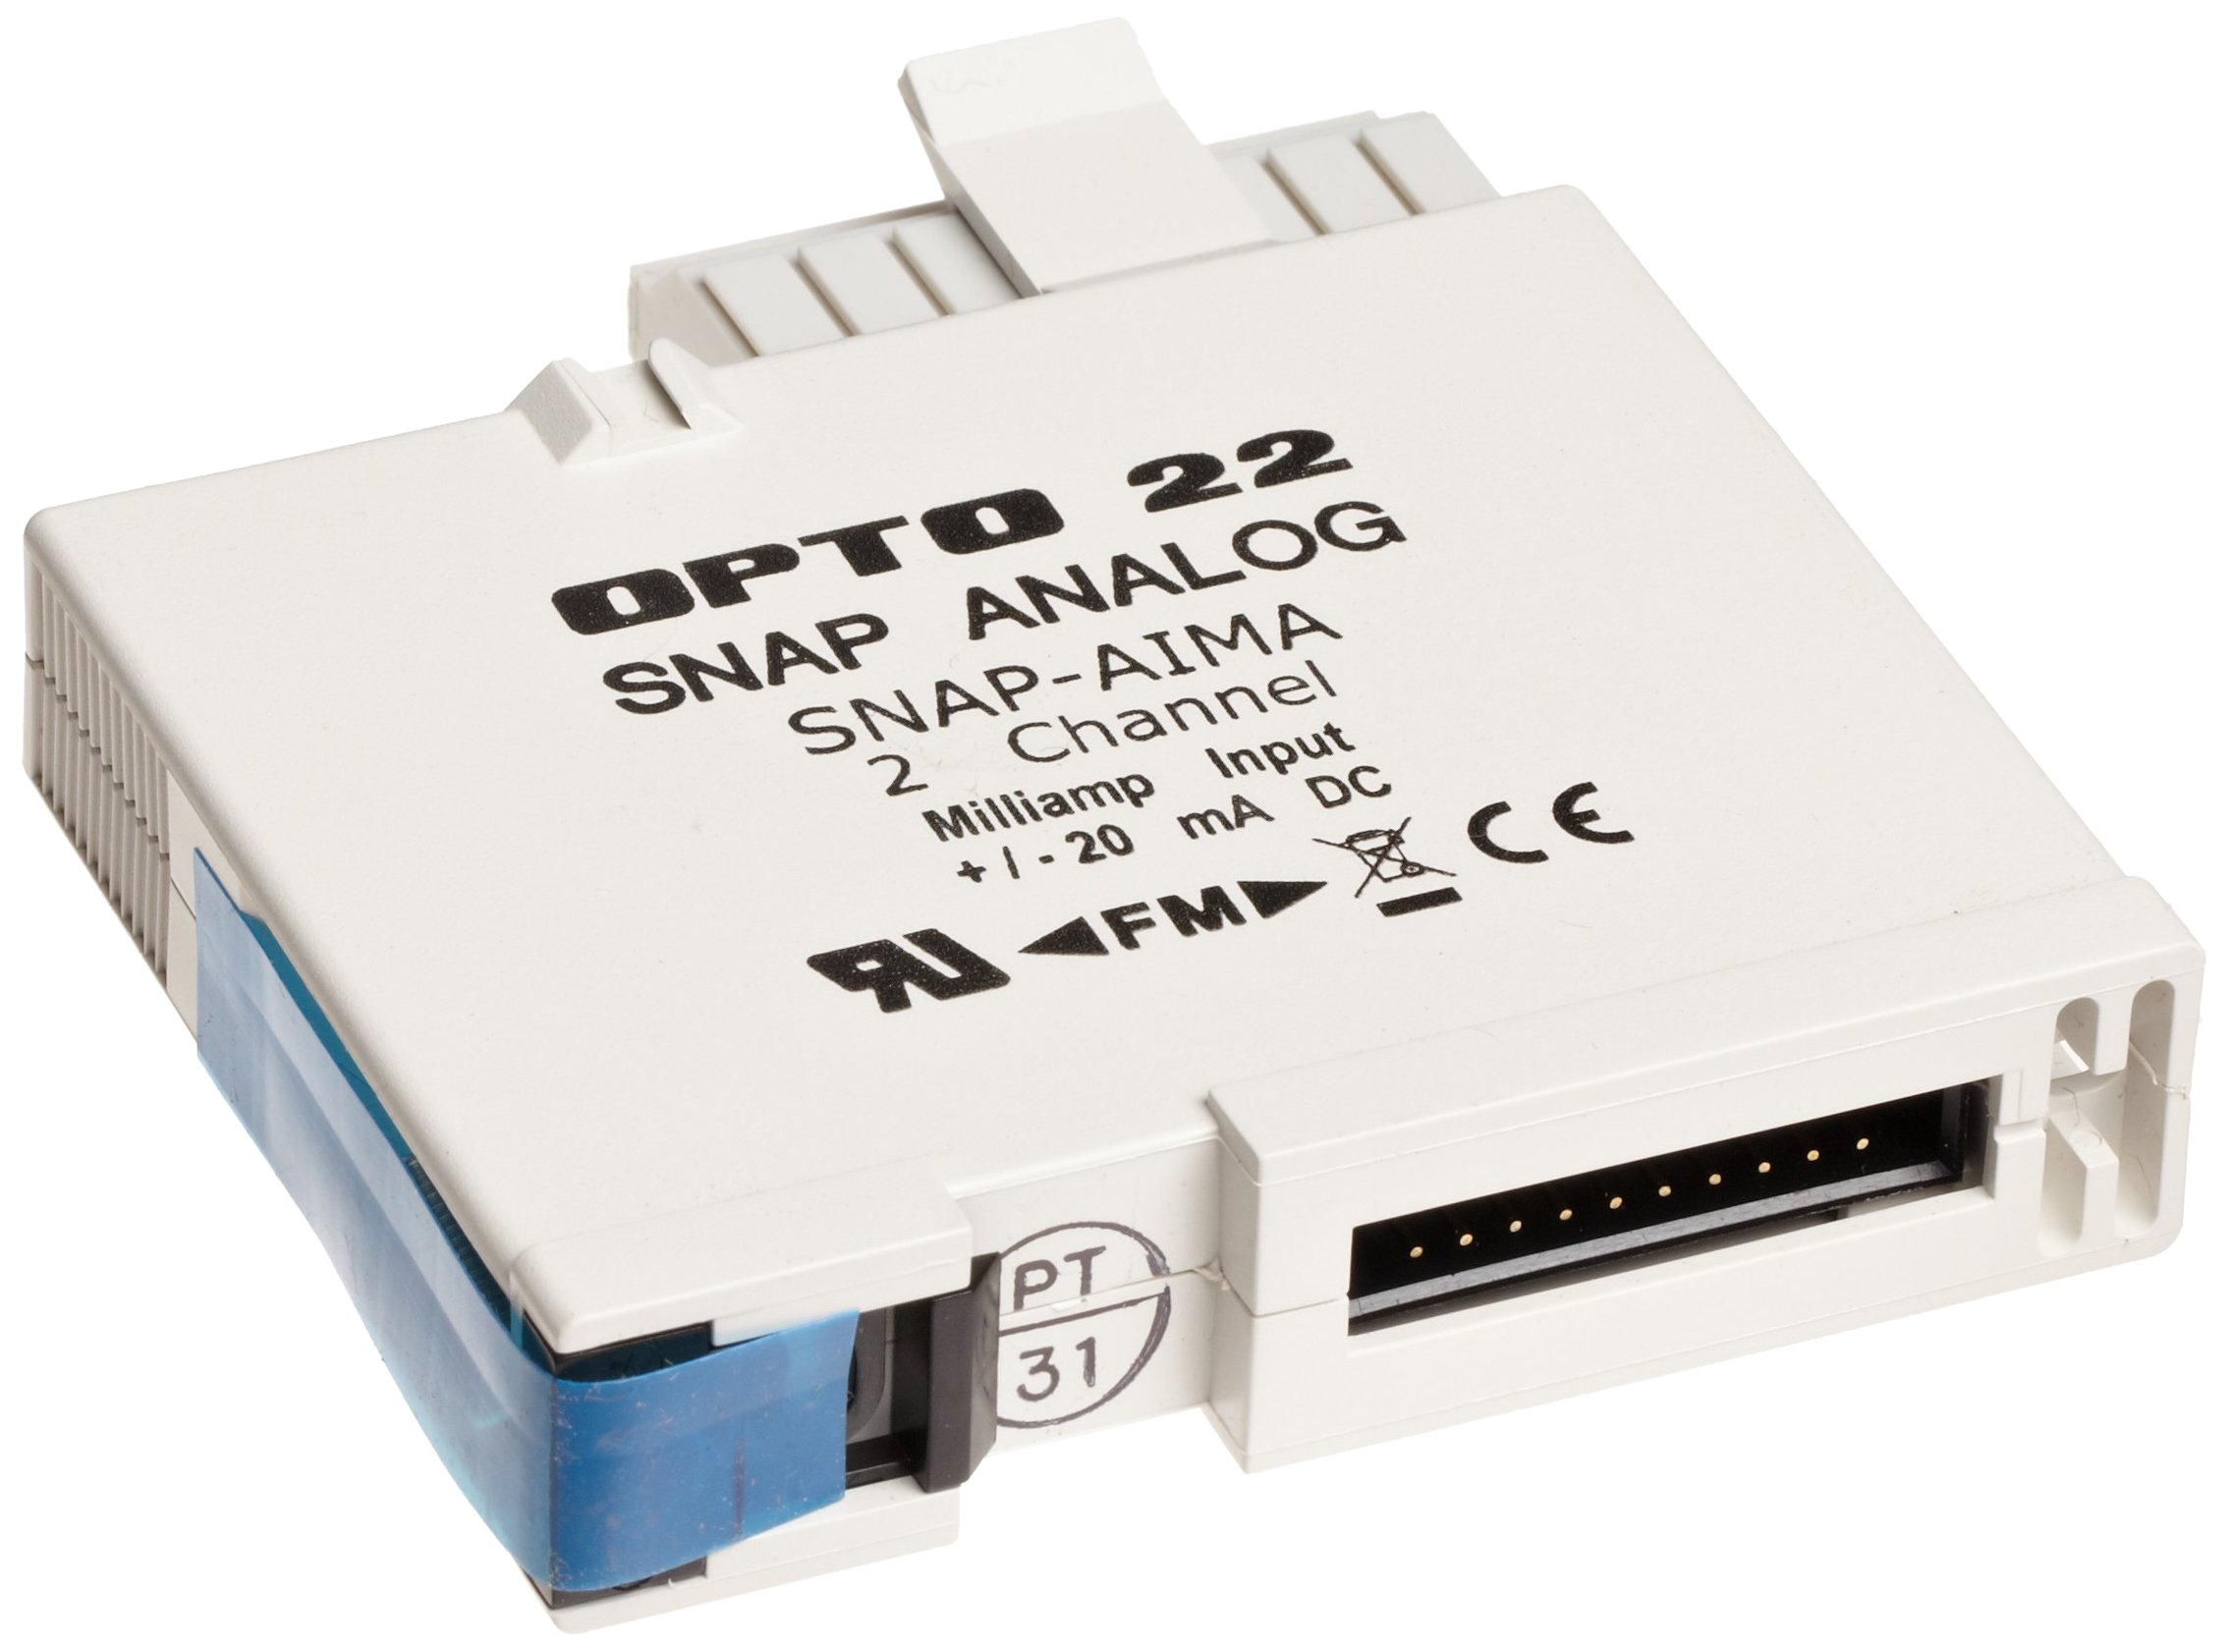 Opto 22 SNAP-AIMA - SNAP Analog Current Input Module, 2-Channel, -20mA to +20mA Input